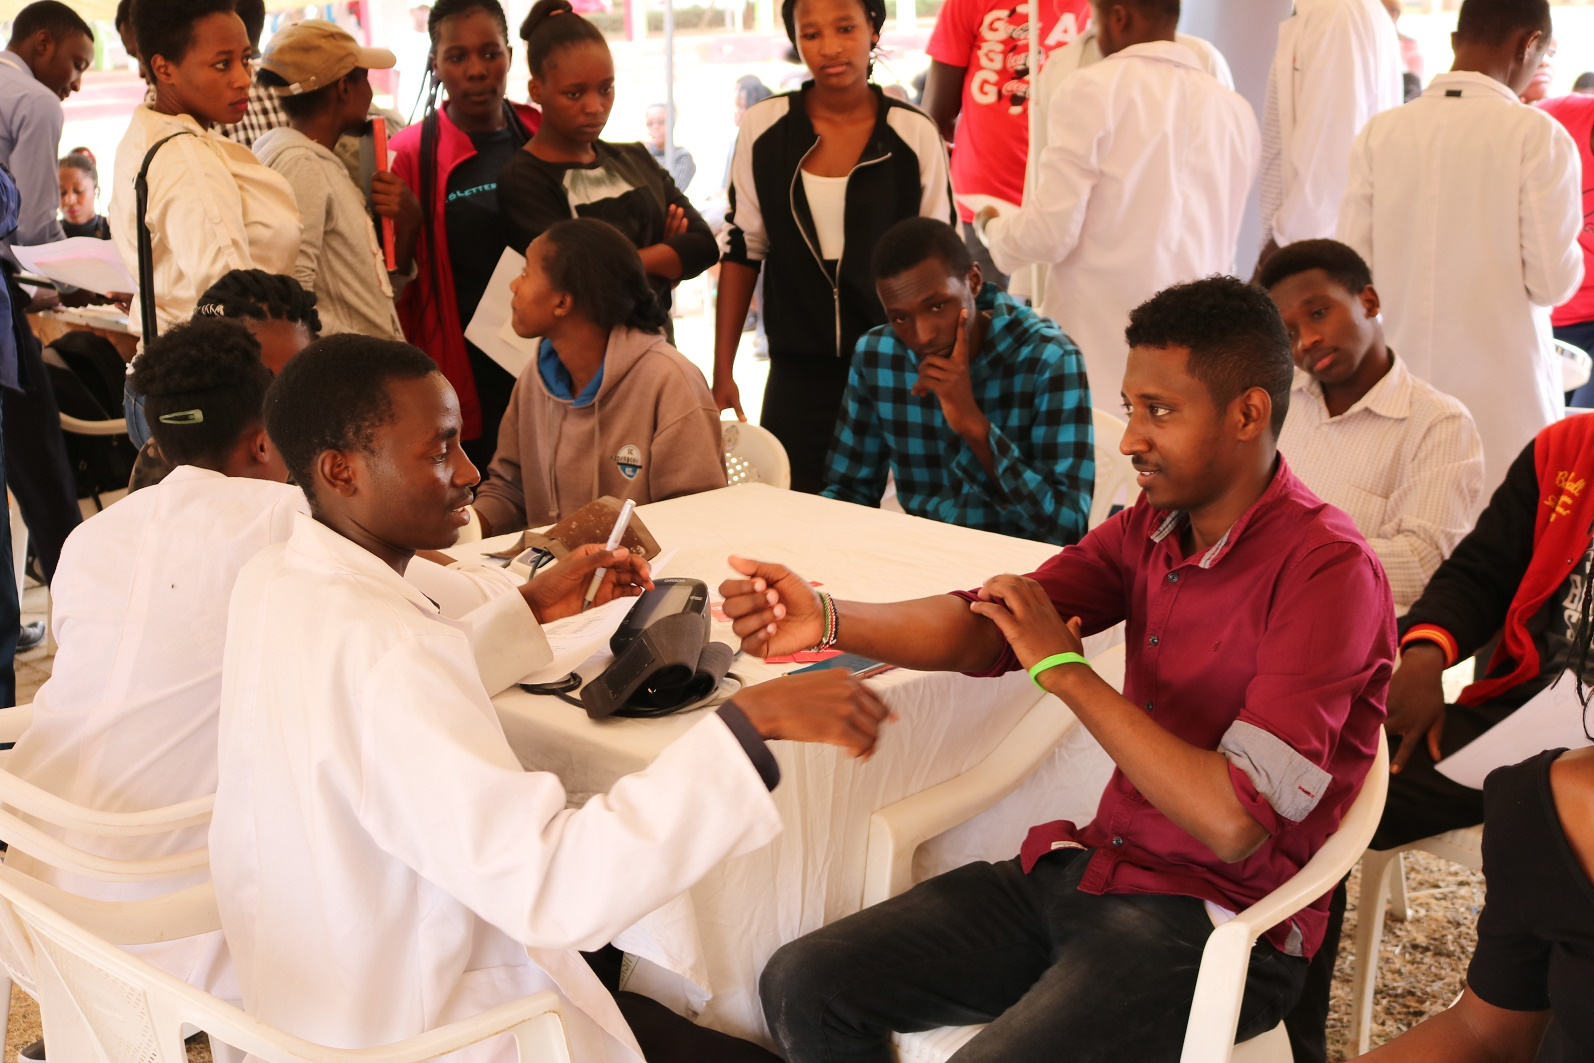 JKUSA-Chaiperson-Ibrahim Boru-right-taking blood-sugar test during the drive